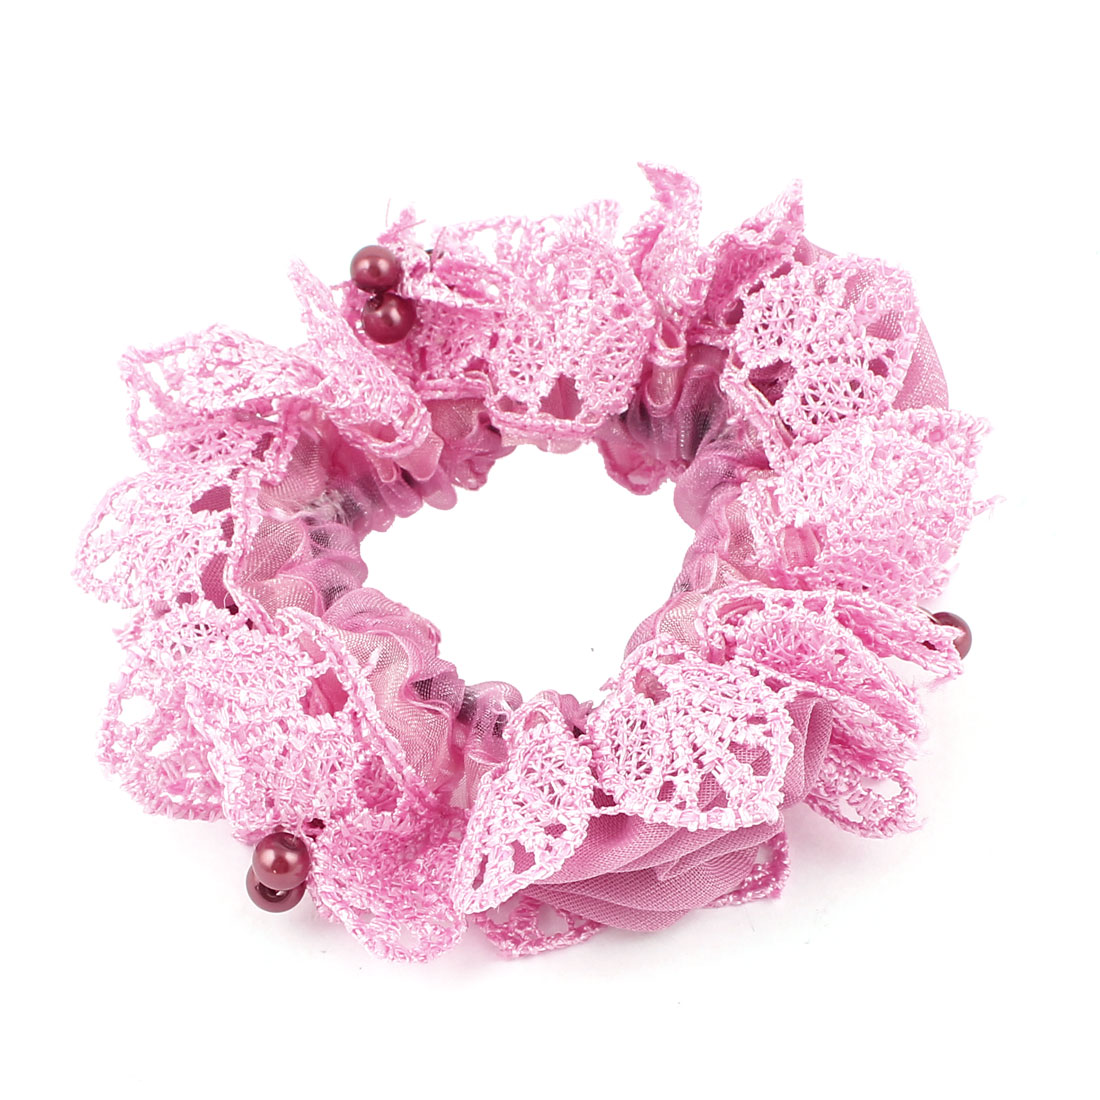 Woman Red Beads Lace Edge Elastic Band Ruffle Ponytail Holder Hair Band Pink